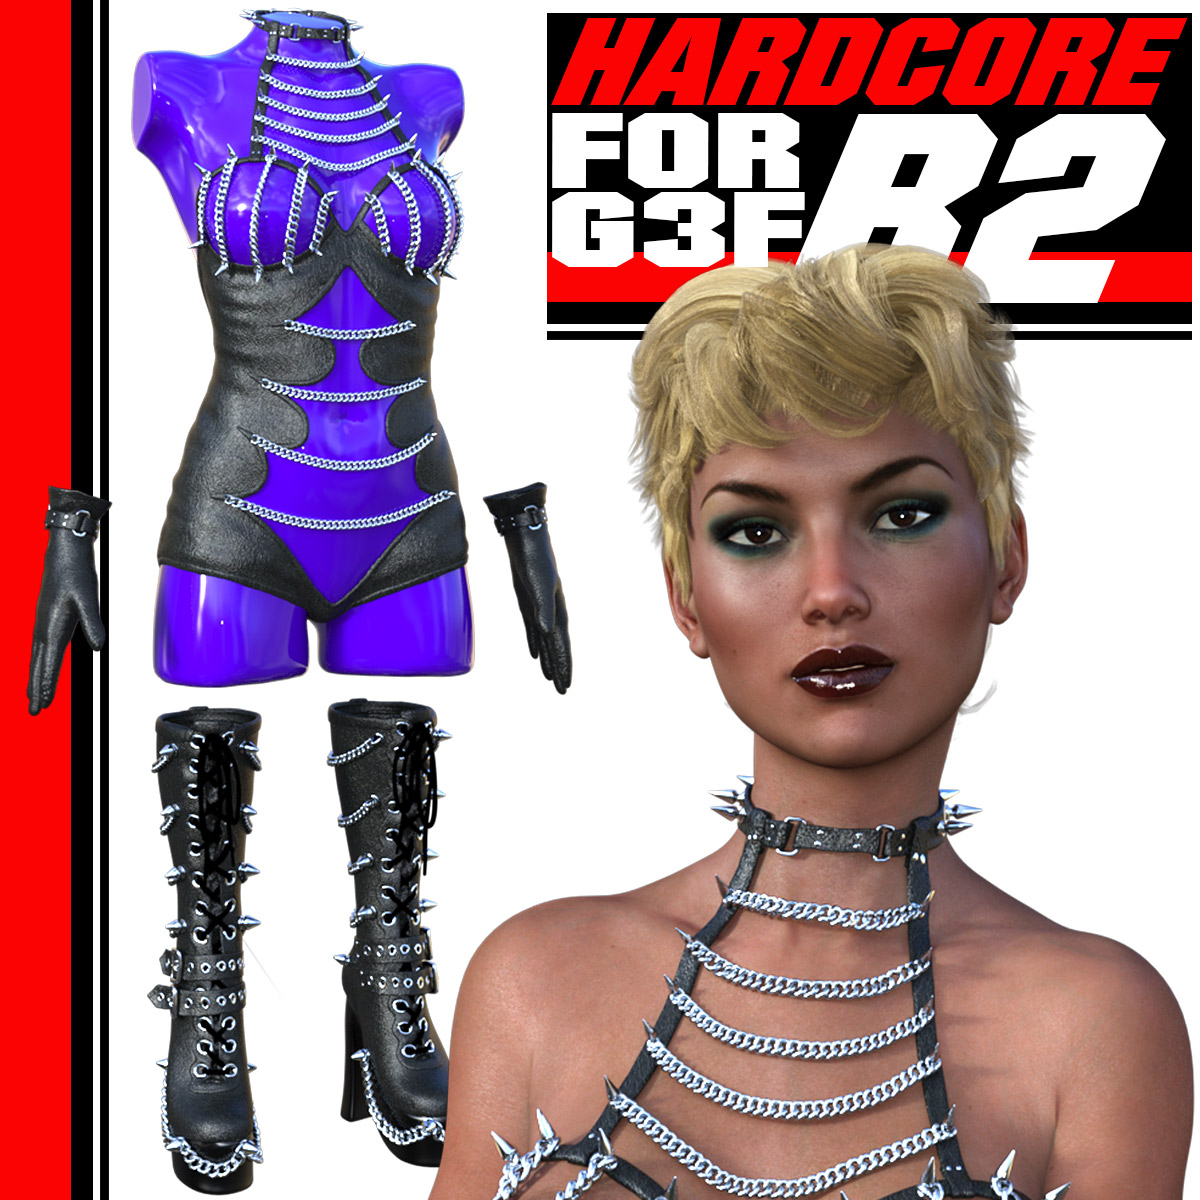 HARDCORE-R2 for G3 females